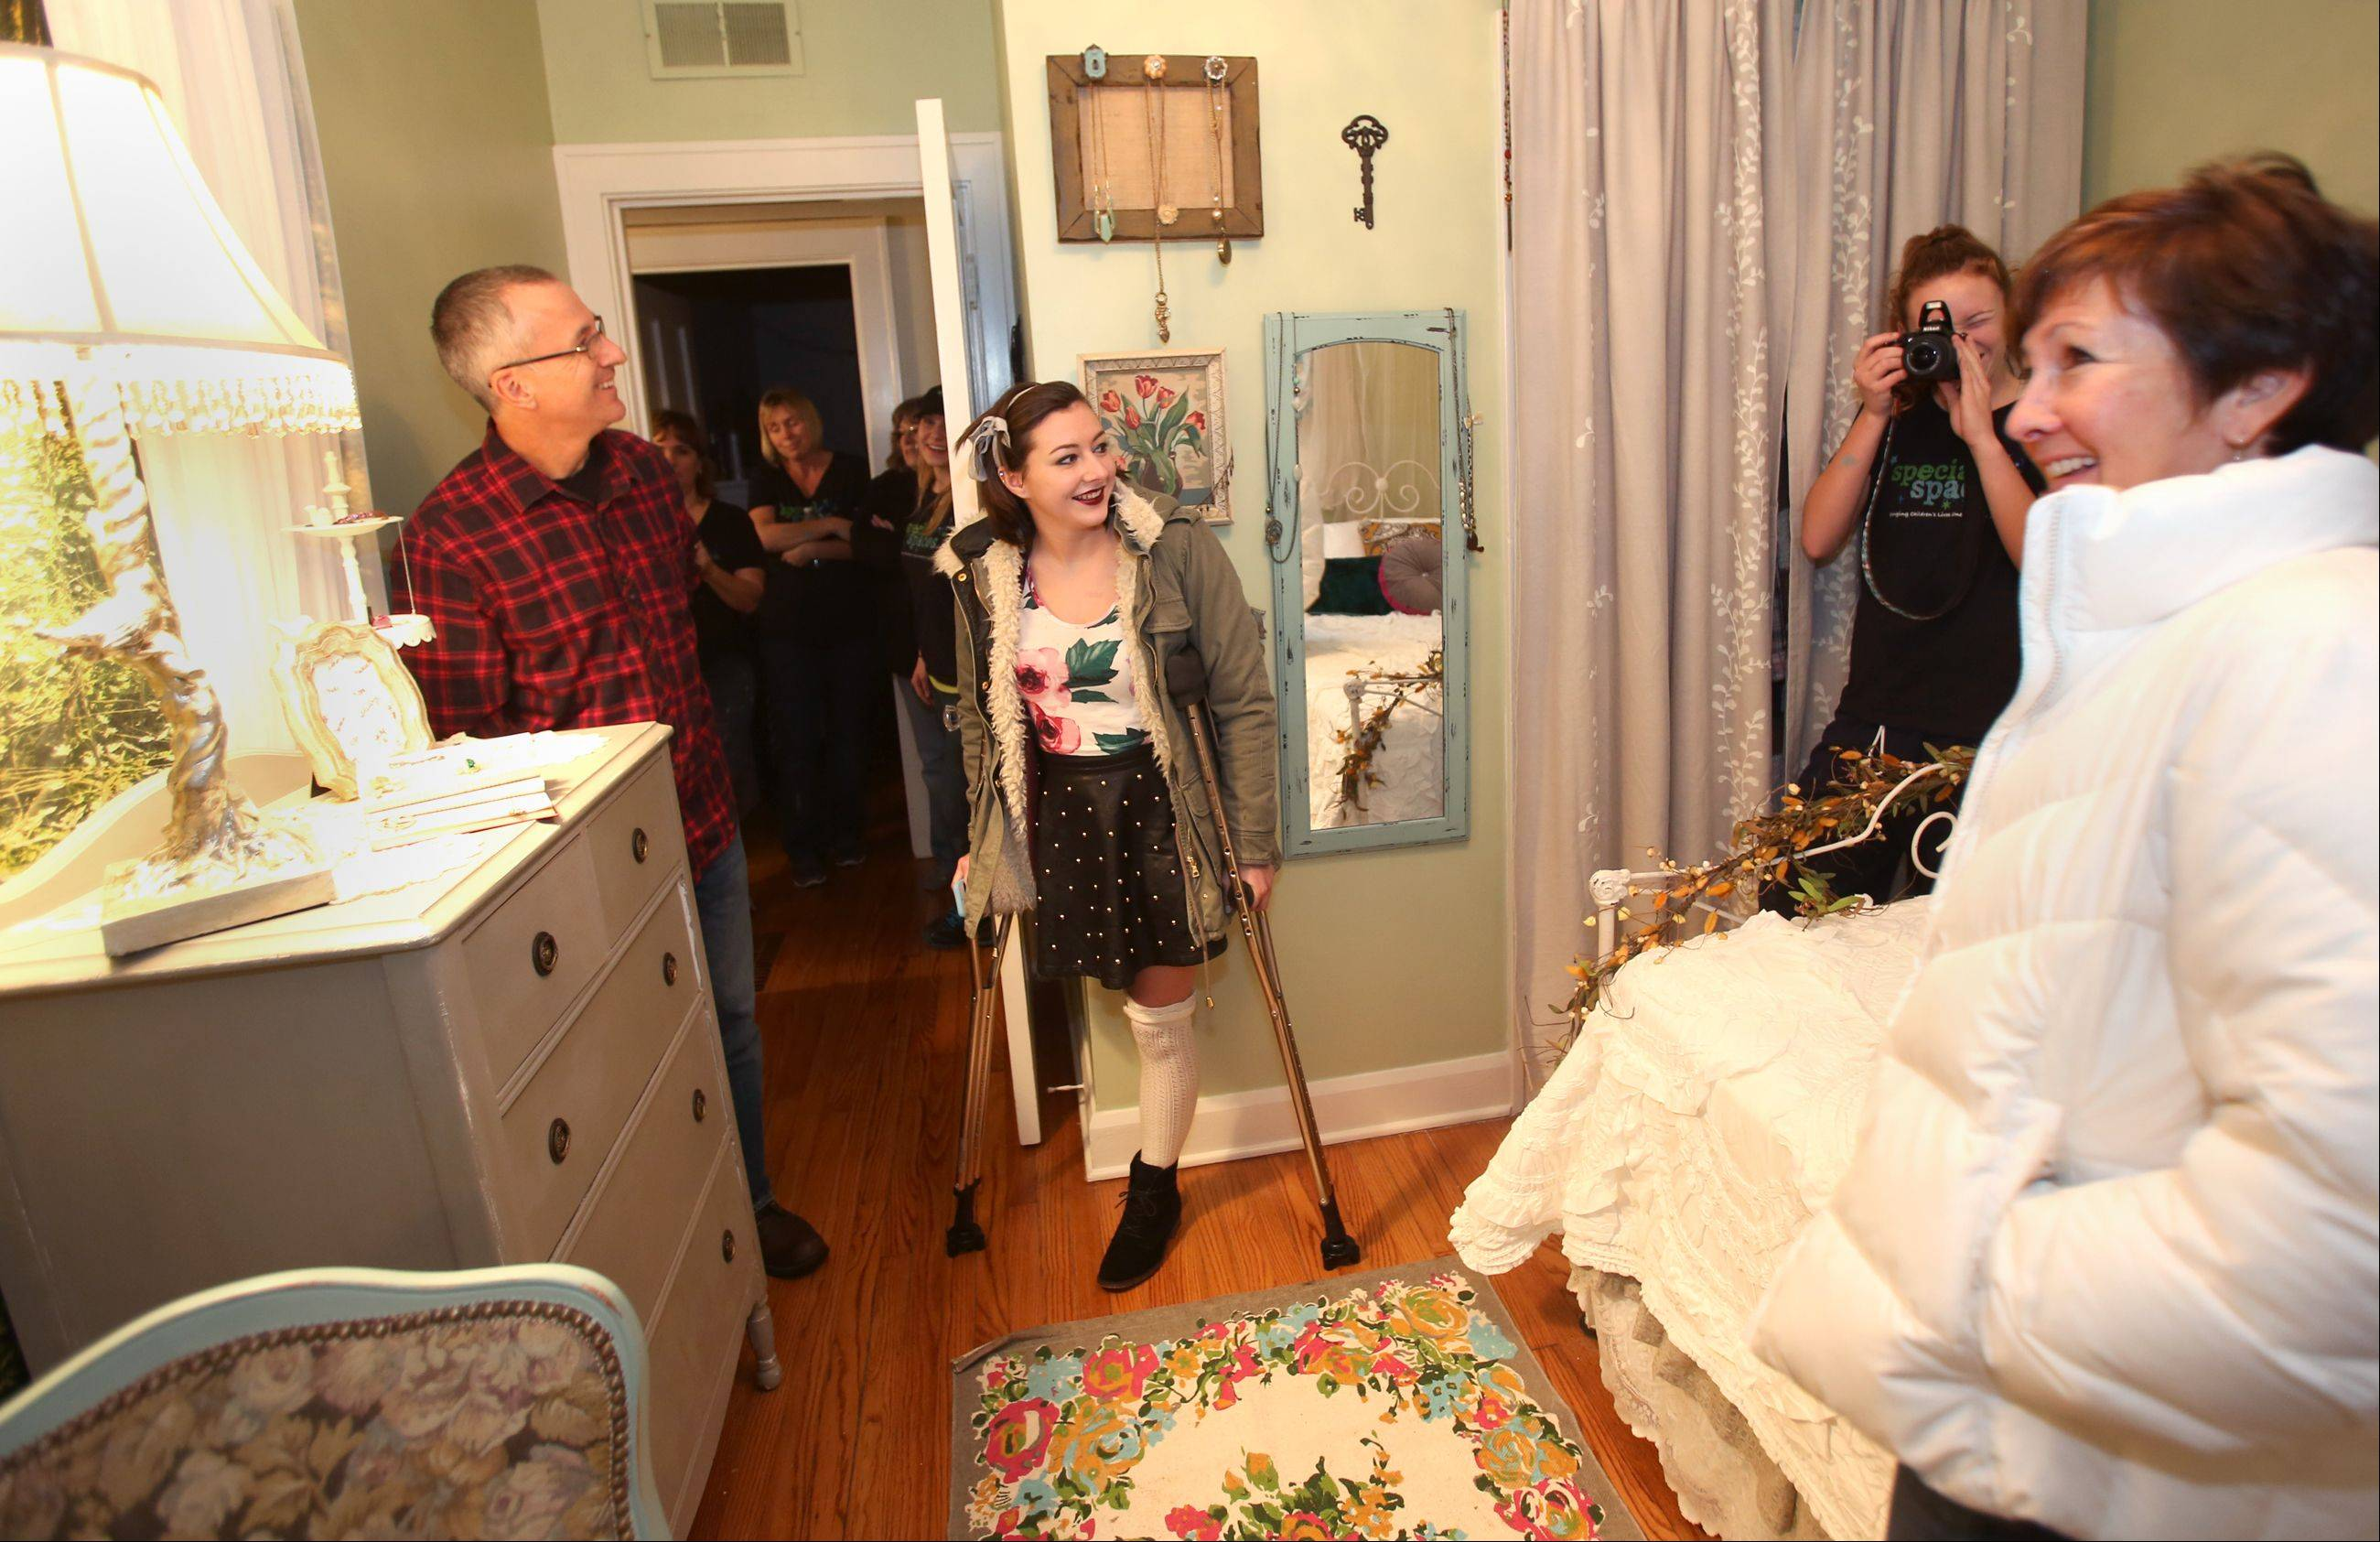 Genevieve Cipriano, 18, of Glen Ellyn looks over her bedroom with her parents Michael and Beth Cipriano. The room was designed by Special Spaces Chicagoland, a Naperville nonprofit organization that creates dream bedrooms for children with life threatening medical conditions.